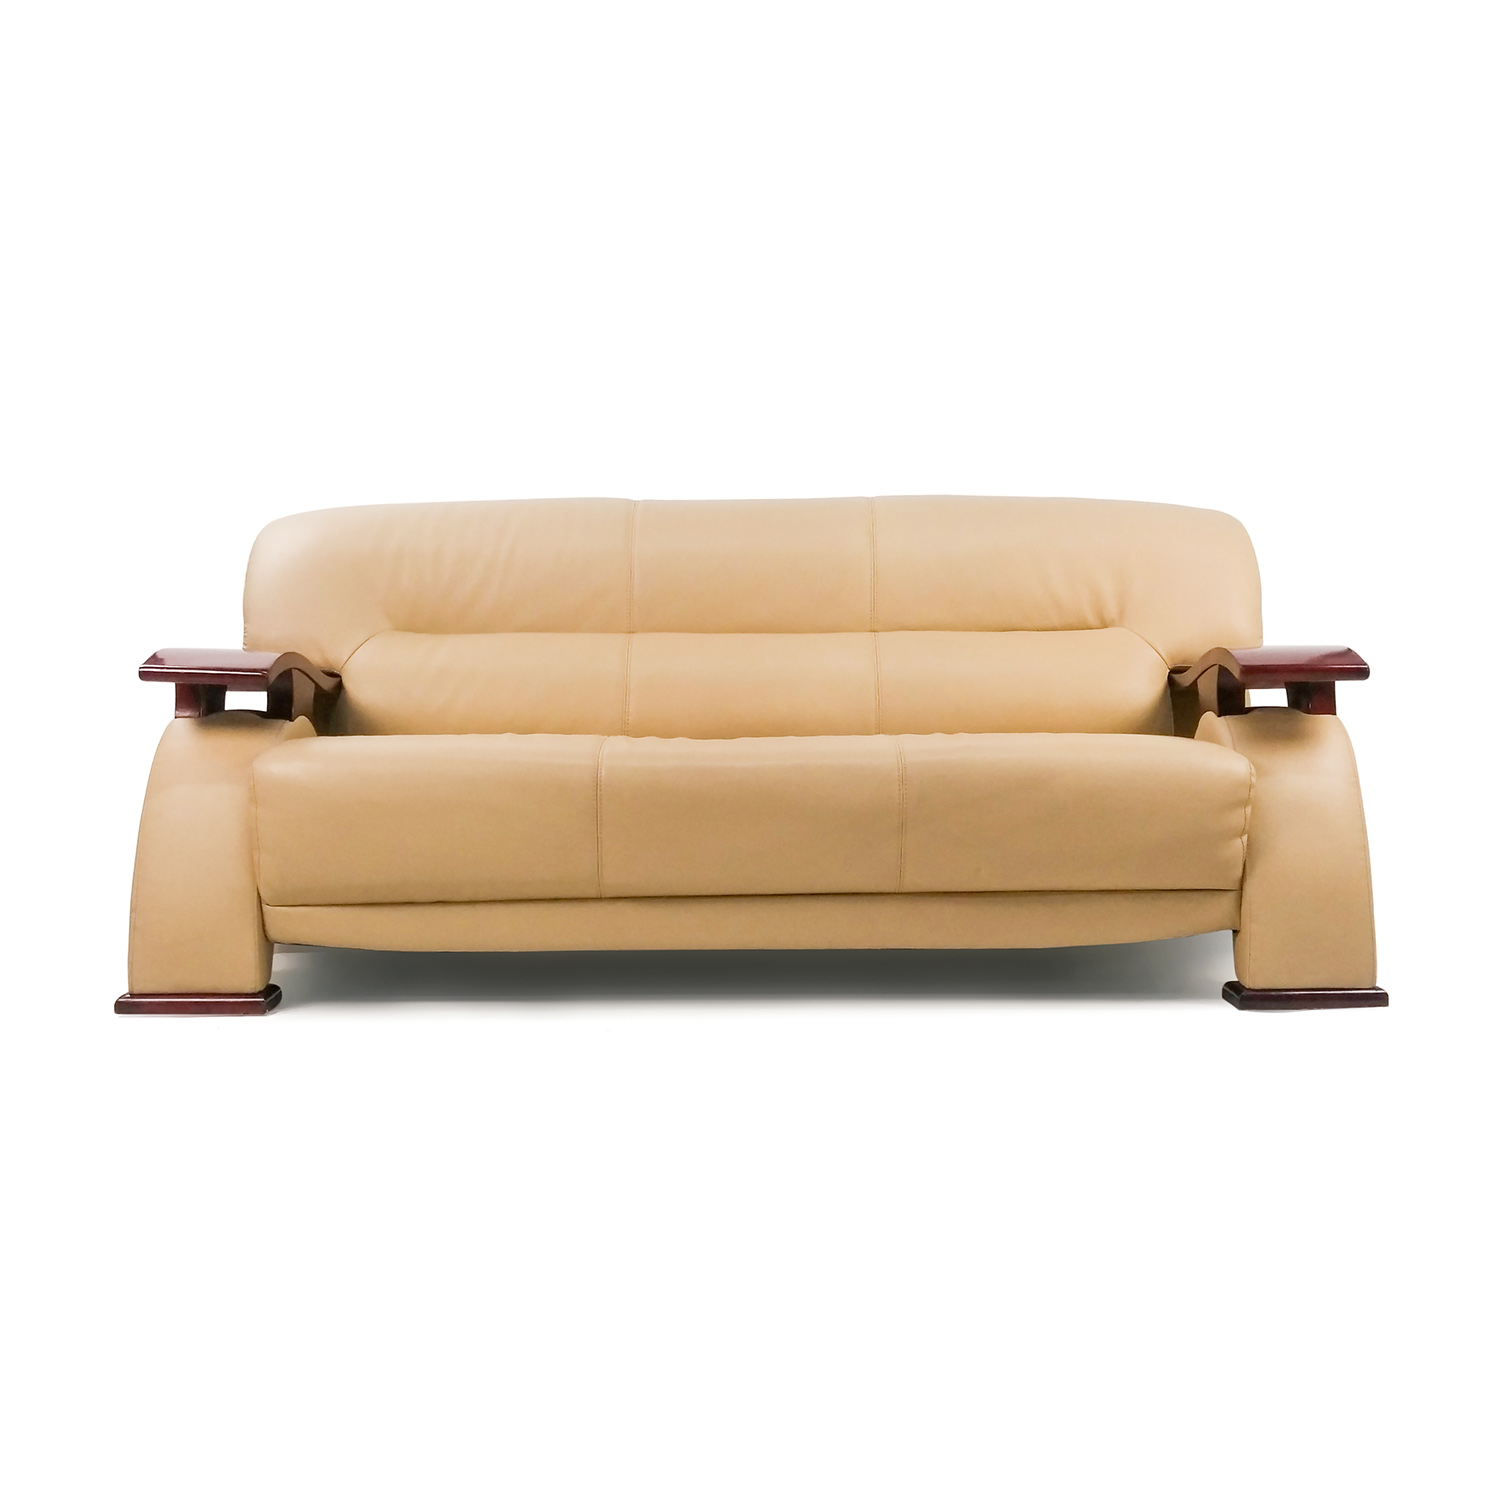 84 Off Unknown Brand Contemporary Beige Leather Sofa